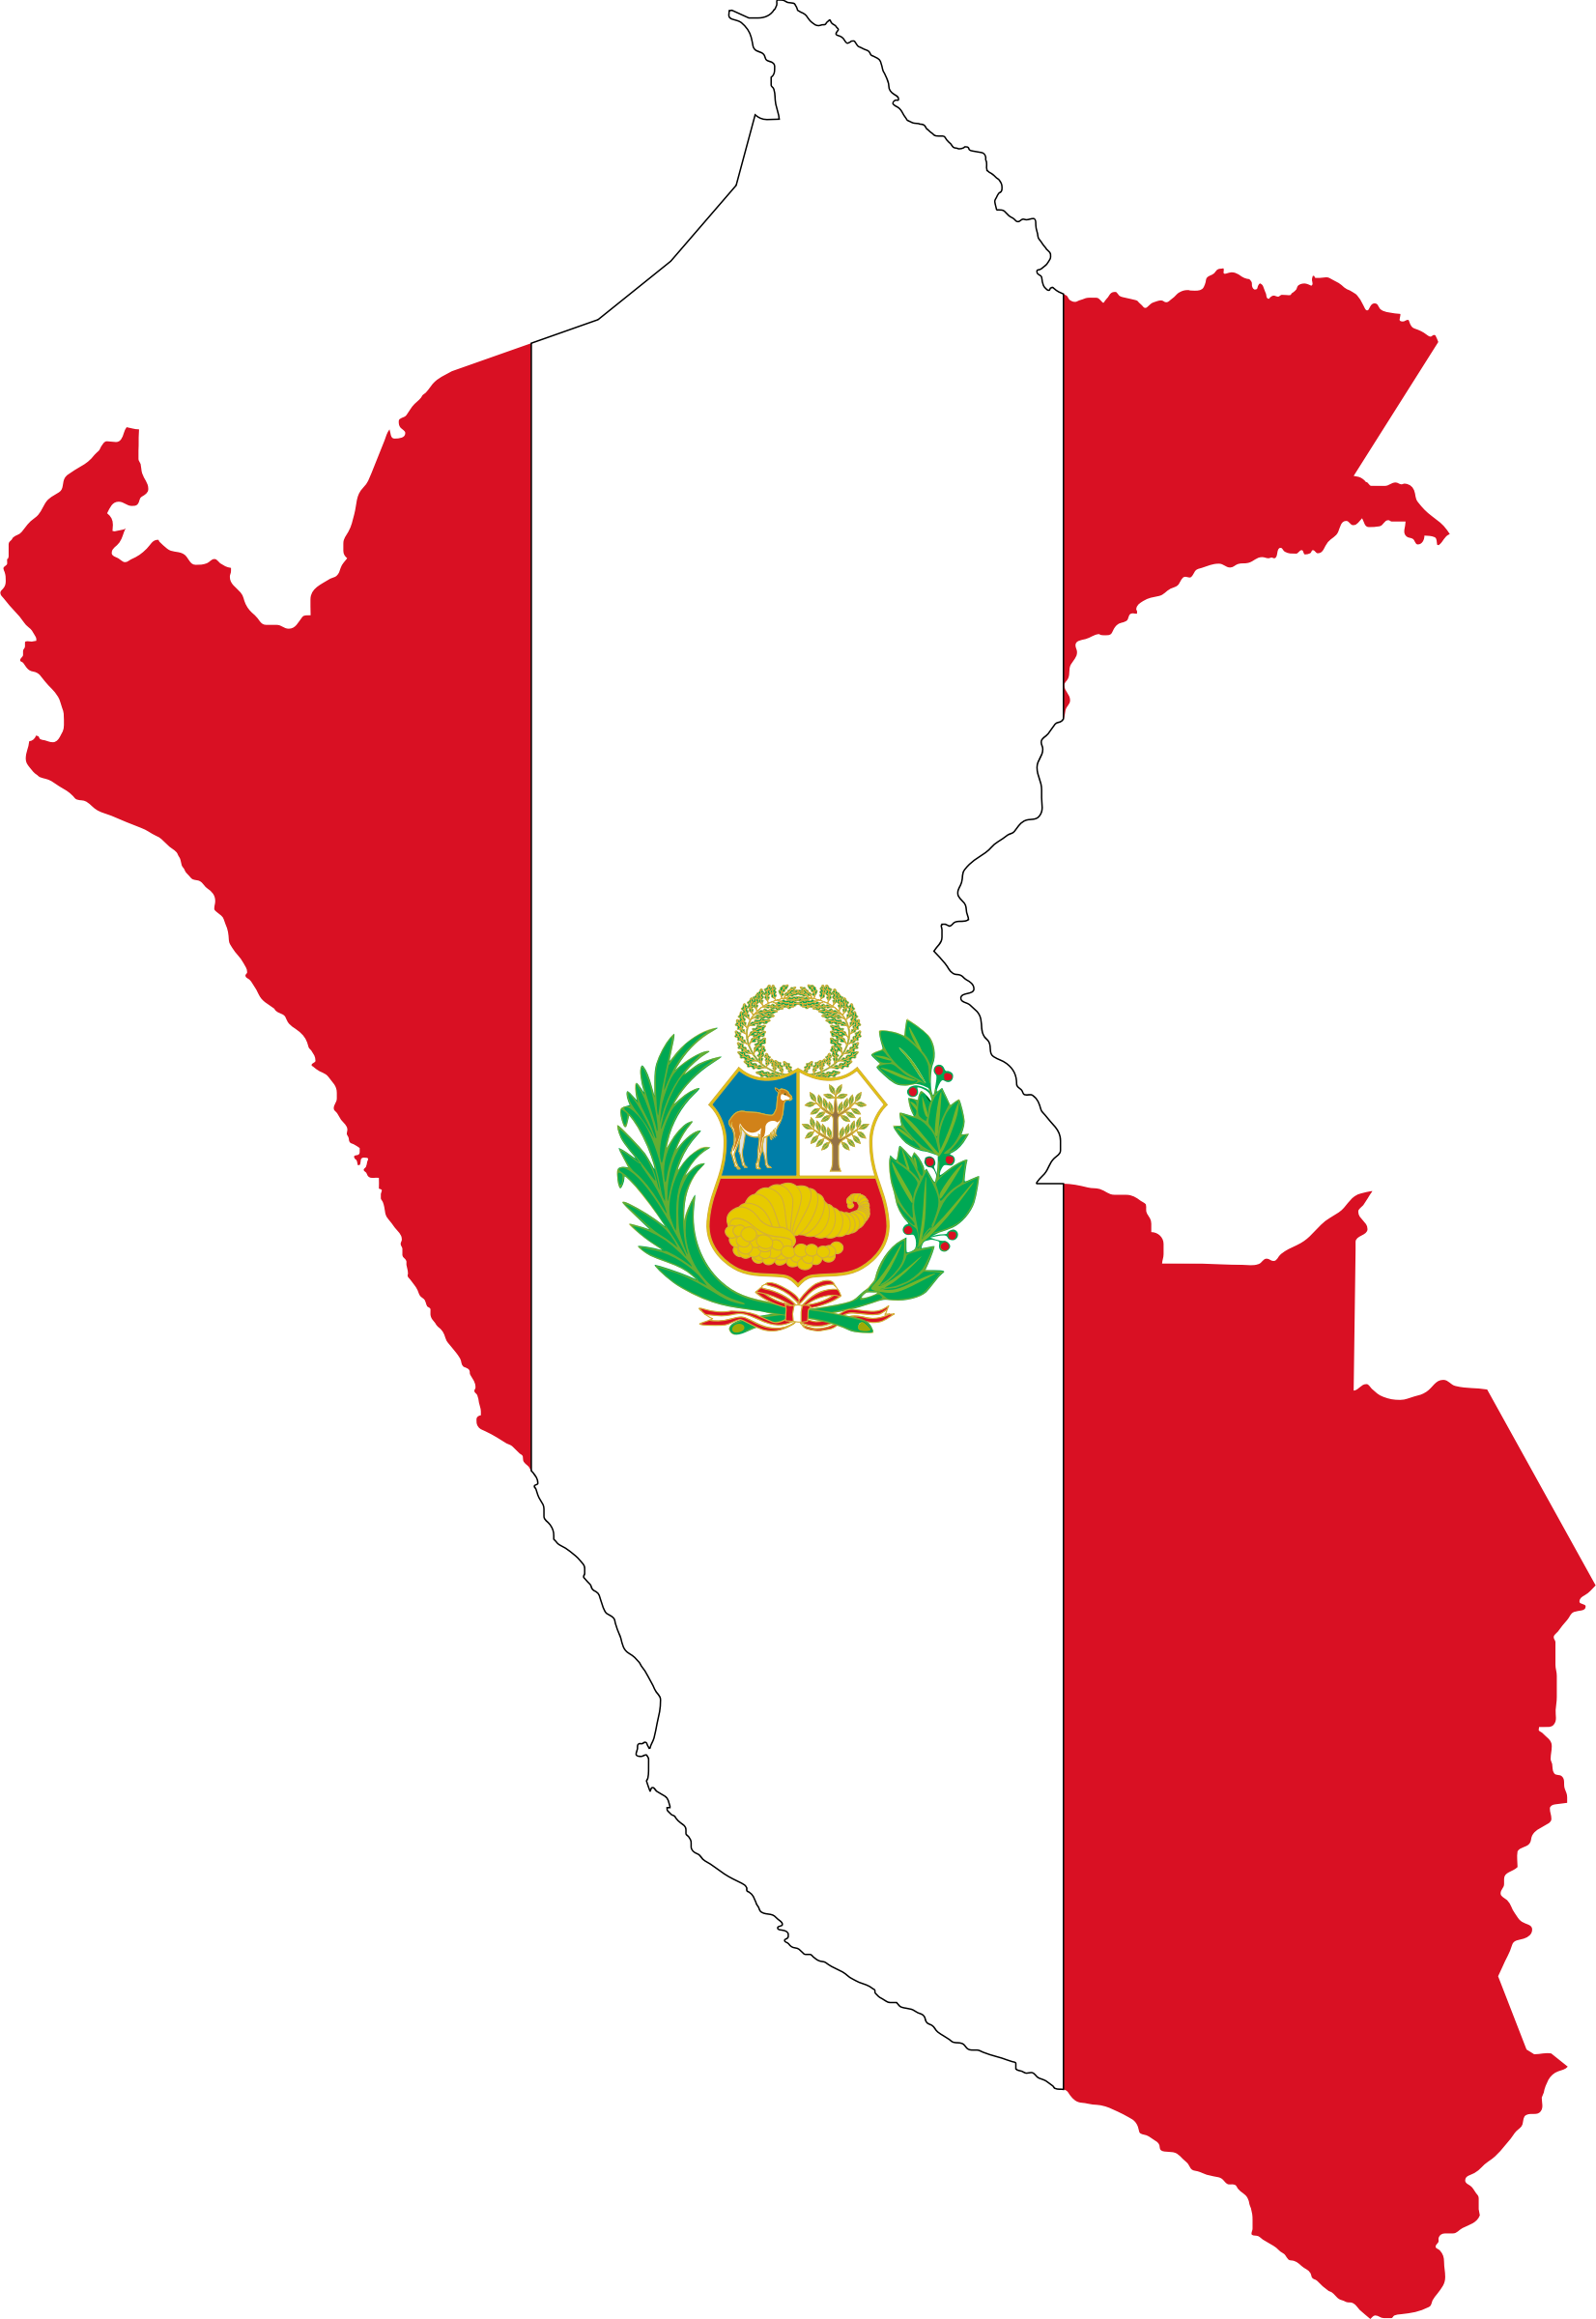 Latin america flags png. Image result for peru